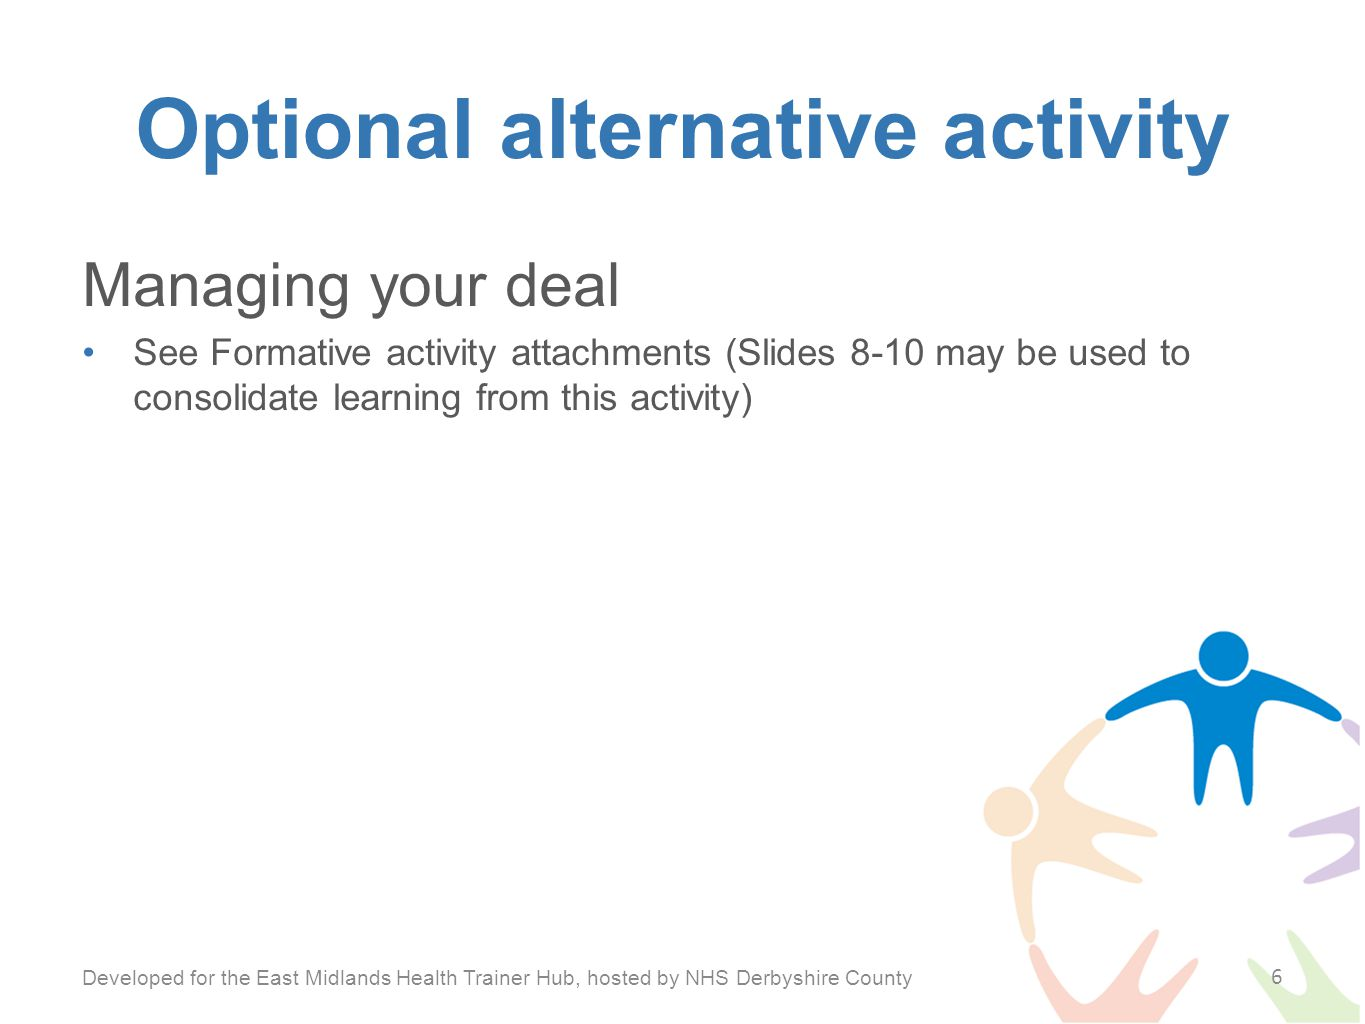 Optional alternative activity 'I don't like maths!' See Formative activity attachments May be used to replace slides: Making effective contacts –LISTEN Making effective contacts Building self efficacy Developed for the East Midlands Health Trainer Hub, hosted by NHS Derbyshire County 27